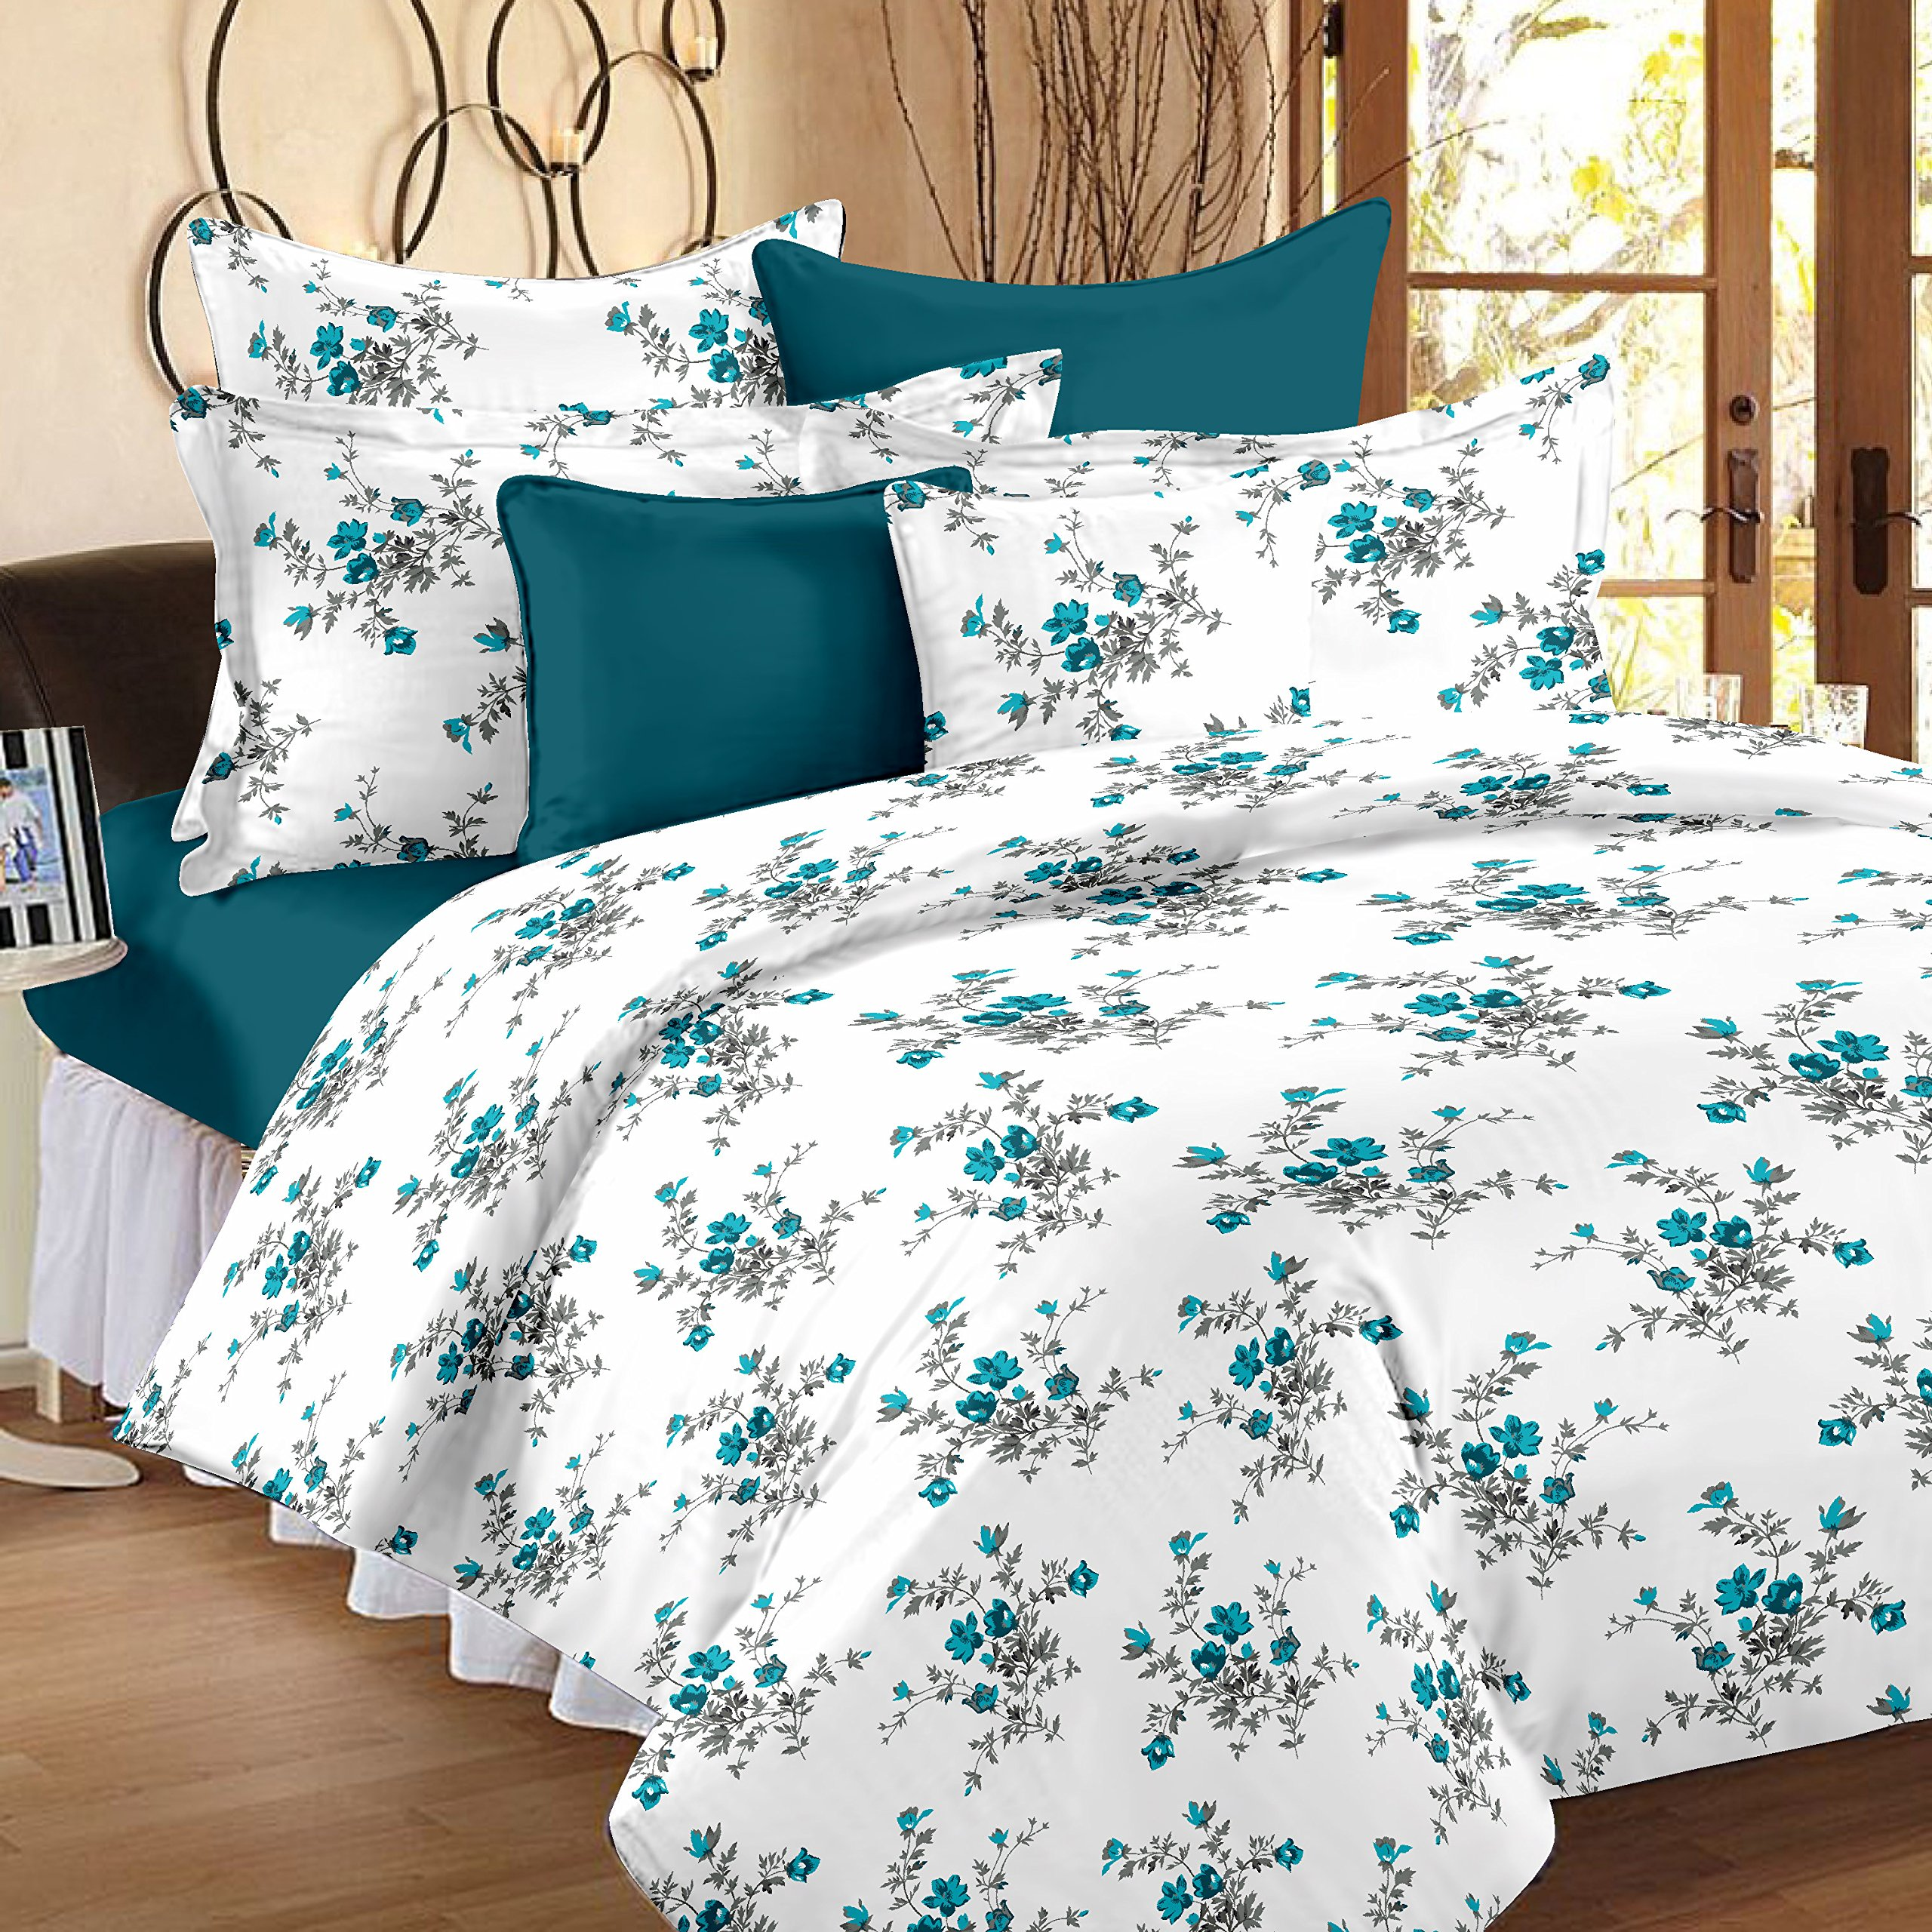 Ahmedabad Cotton Comfort 160 TC Cotton Single Bedsheet with Pillow Cover - Blue product image